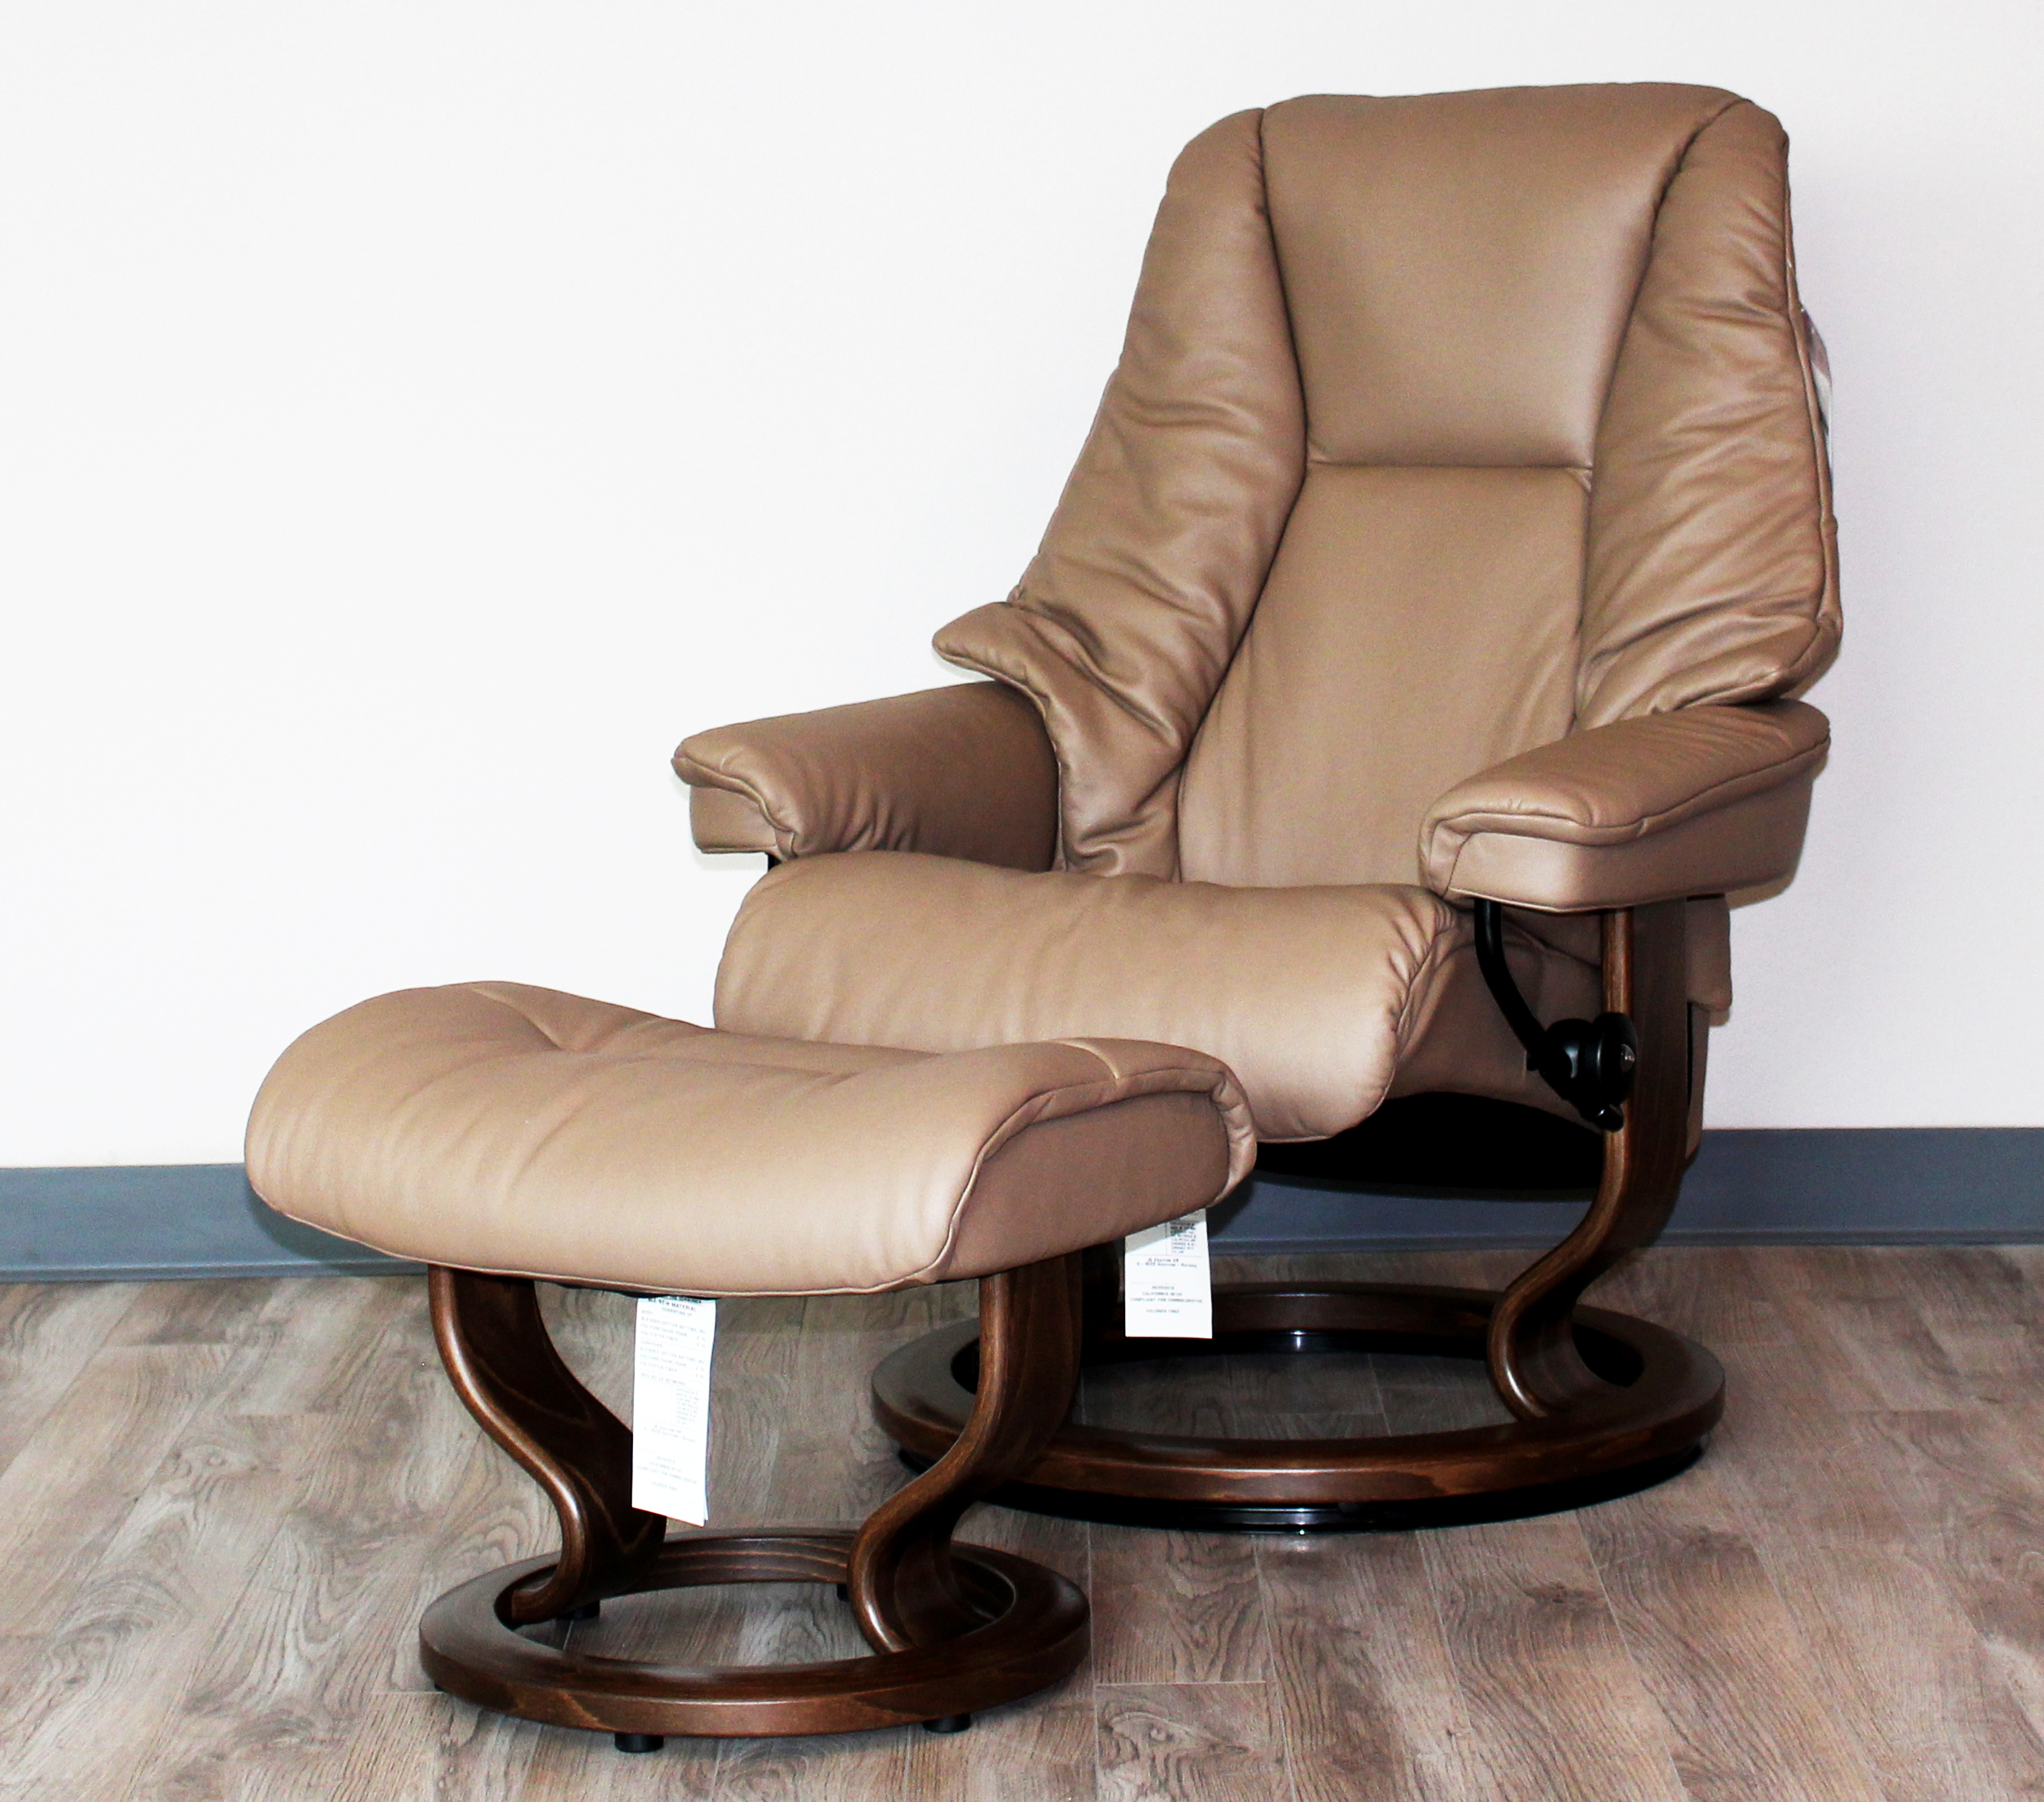 Surprising Stressless Live Medium Recliner Classic Wood Base Chair And Ottoman By Ekornes Caraccident5 Cool Chair Designs And Ideas Caraccident5Info